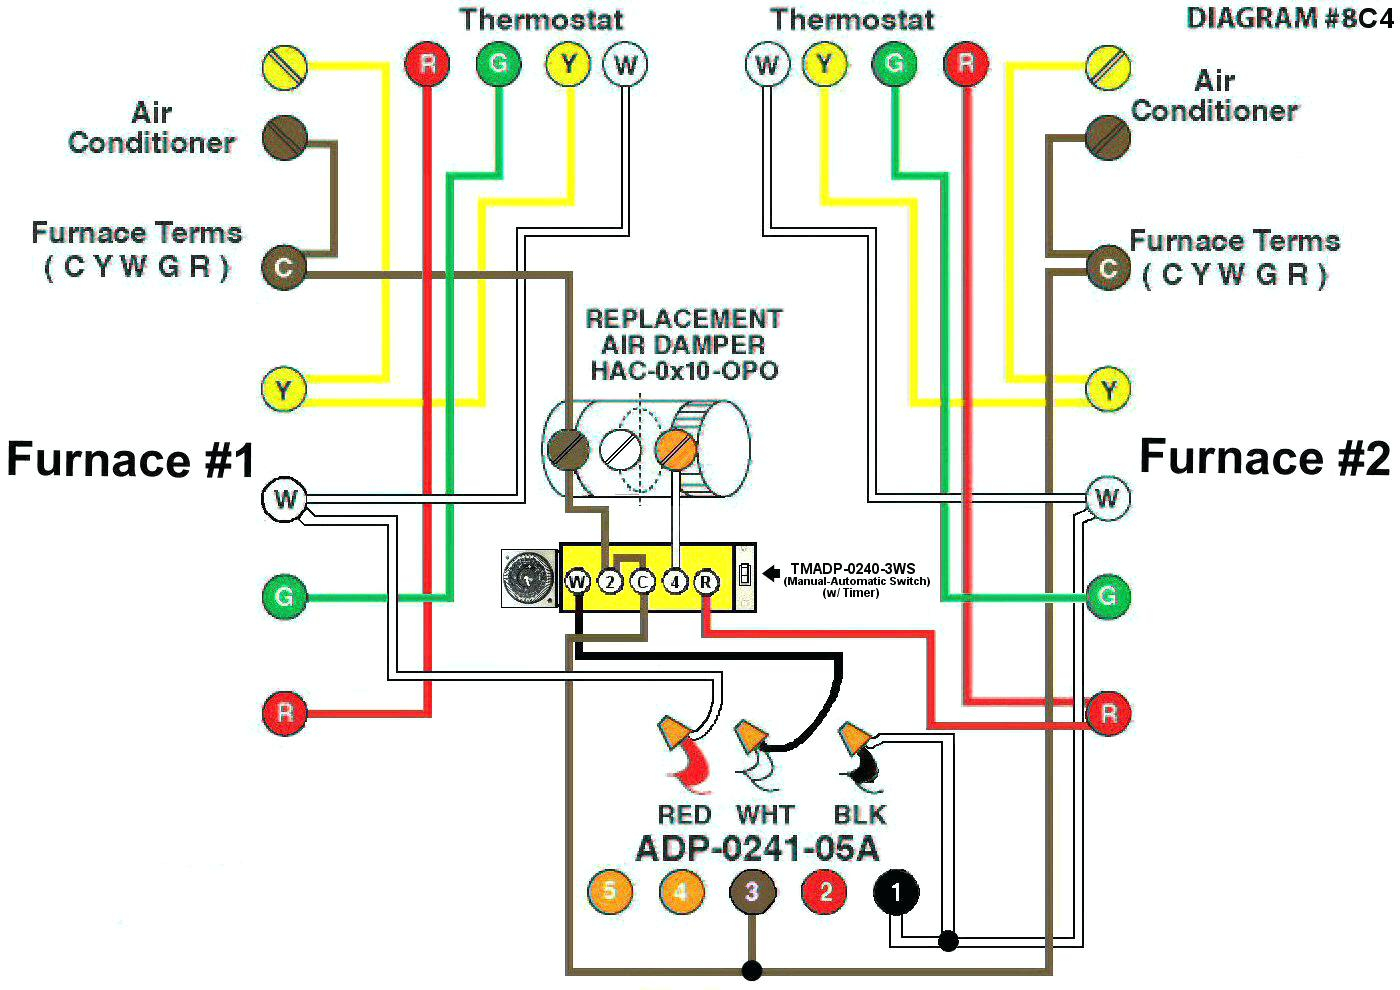 Automatic Vent Damper Wiring Diagram Collection Immersion Heater Awesome Furnace